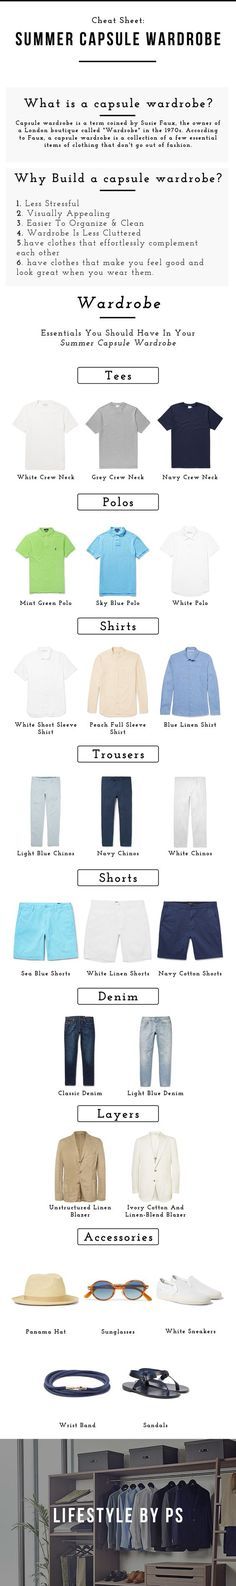 Summer Capsule Wardrobe For Men Infographic. #MensFashion